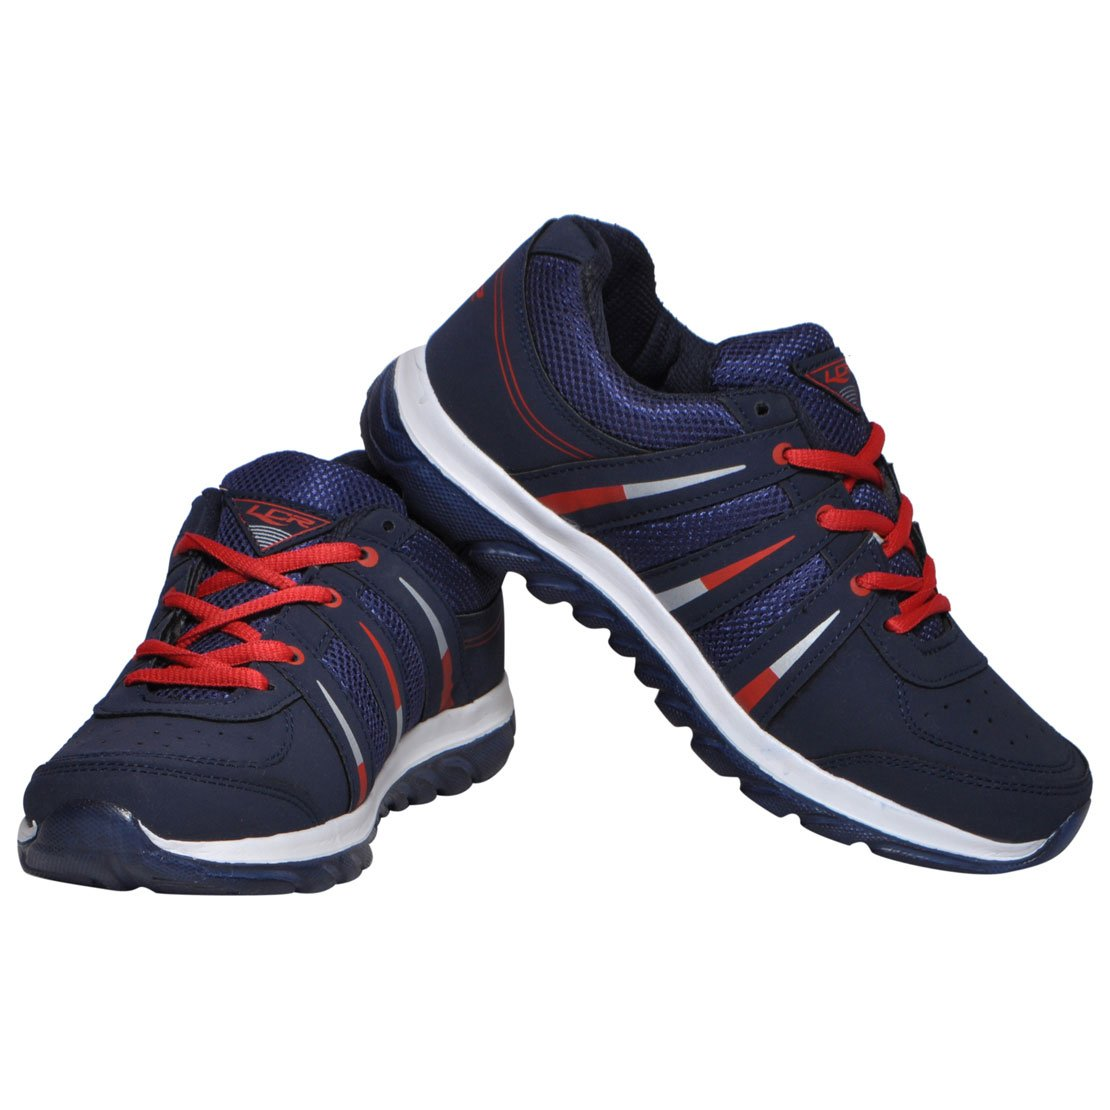 STYLISH SHOES AT RELIABLE PRICES